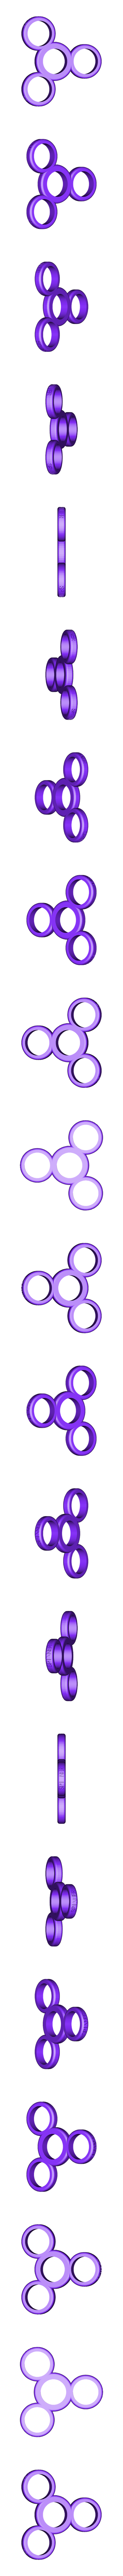 Spinner-22-8-7.stl Download free STL file Customizable fidget spinner with text and perfect storage box • 3D printer template, eirikso